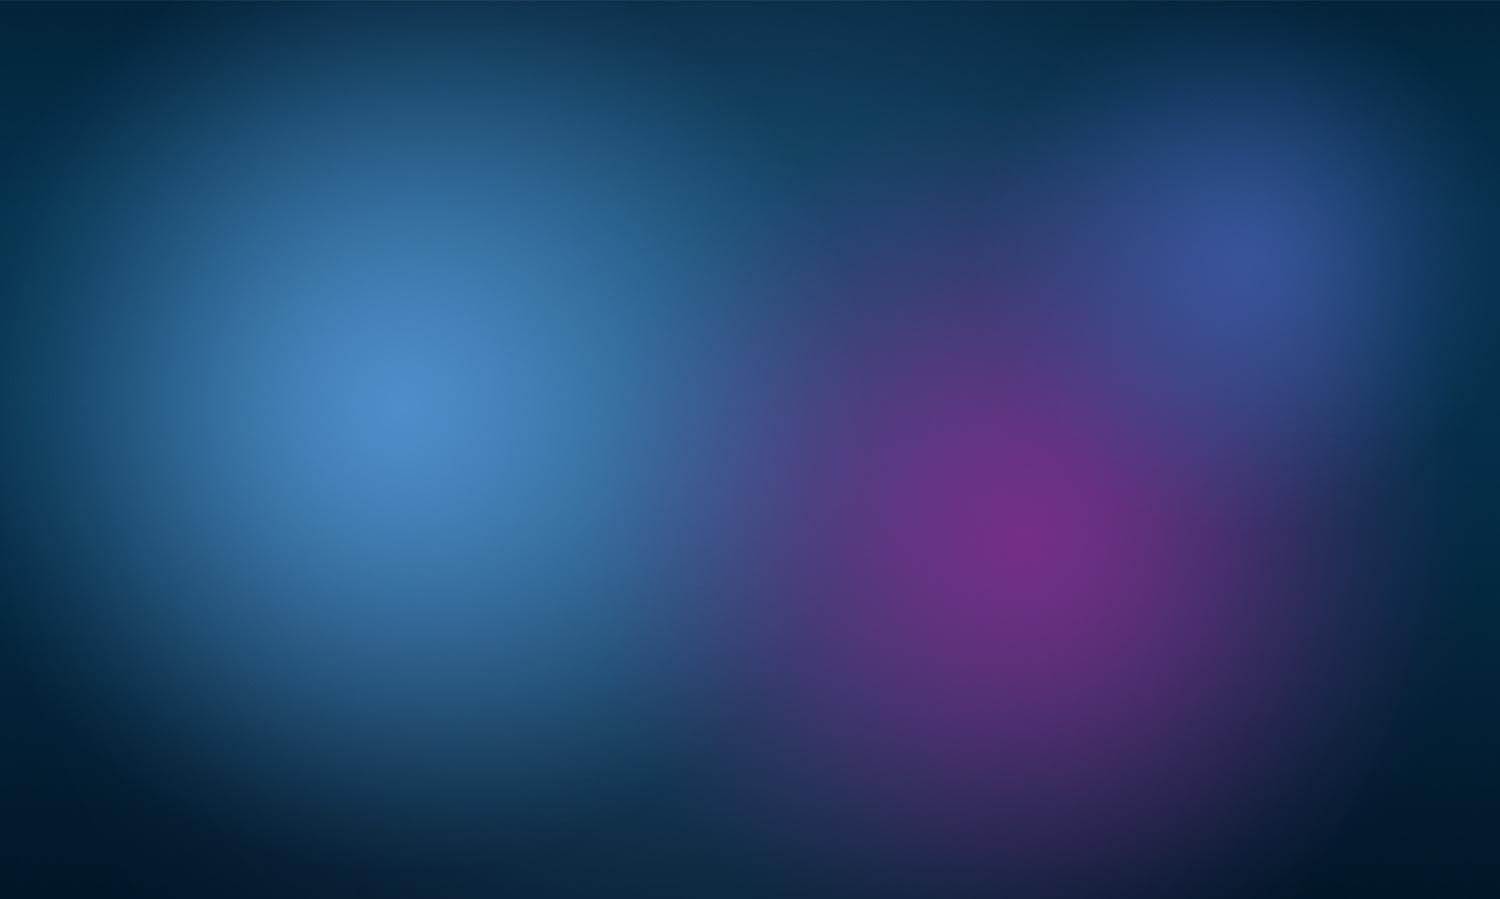 Blue plum texture background